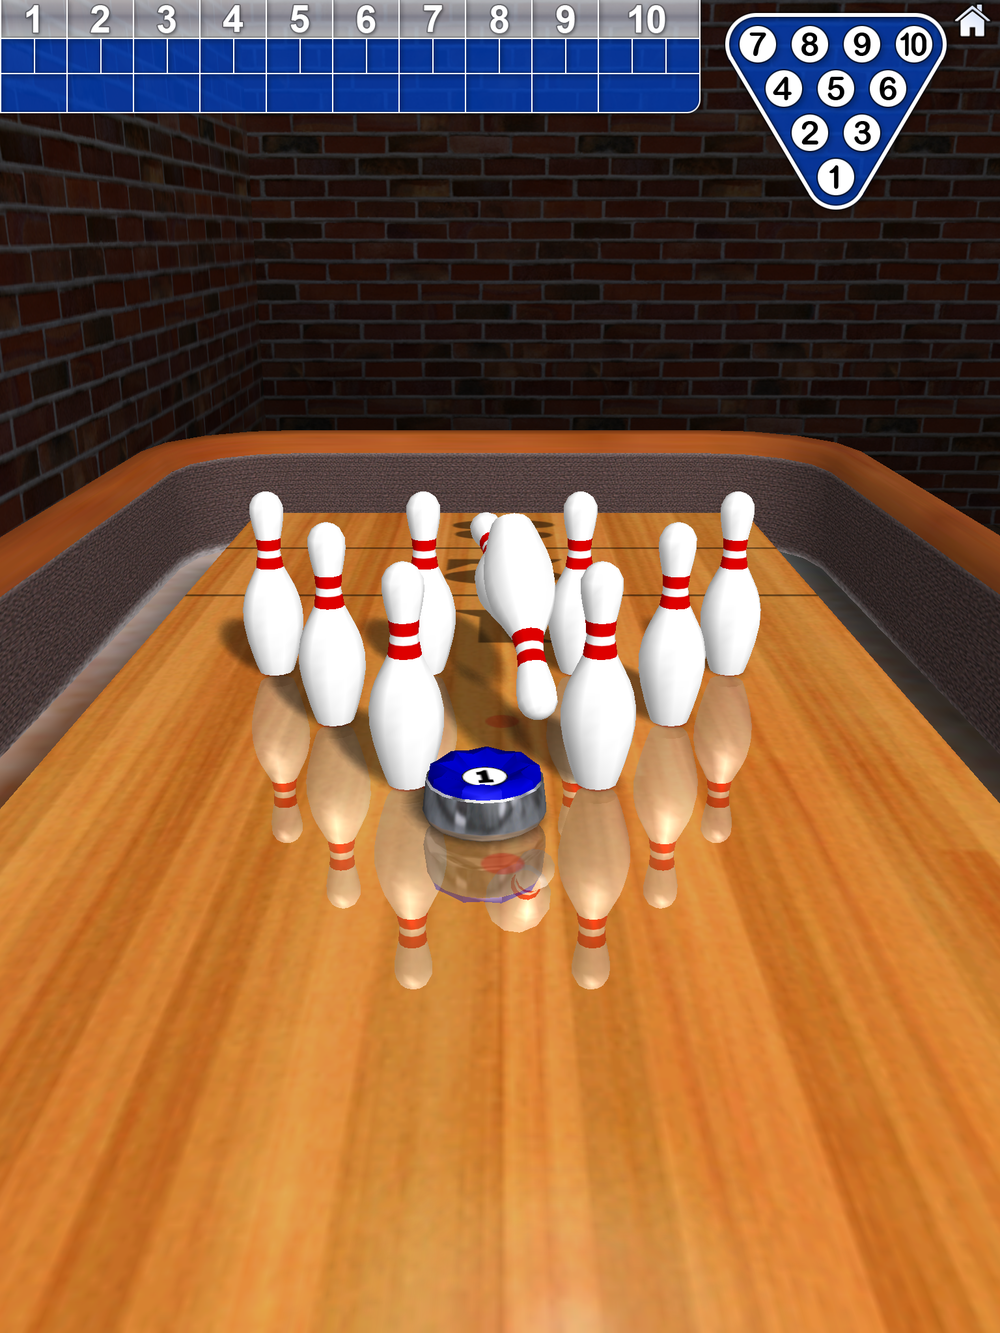 10 Pin Shuffle Bowling by Digital Smoke, recommended app for people living with dementia